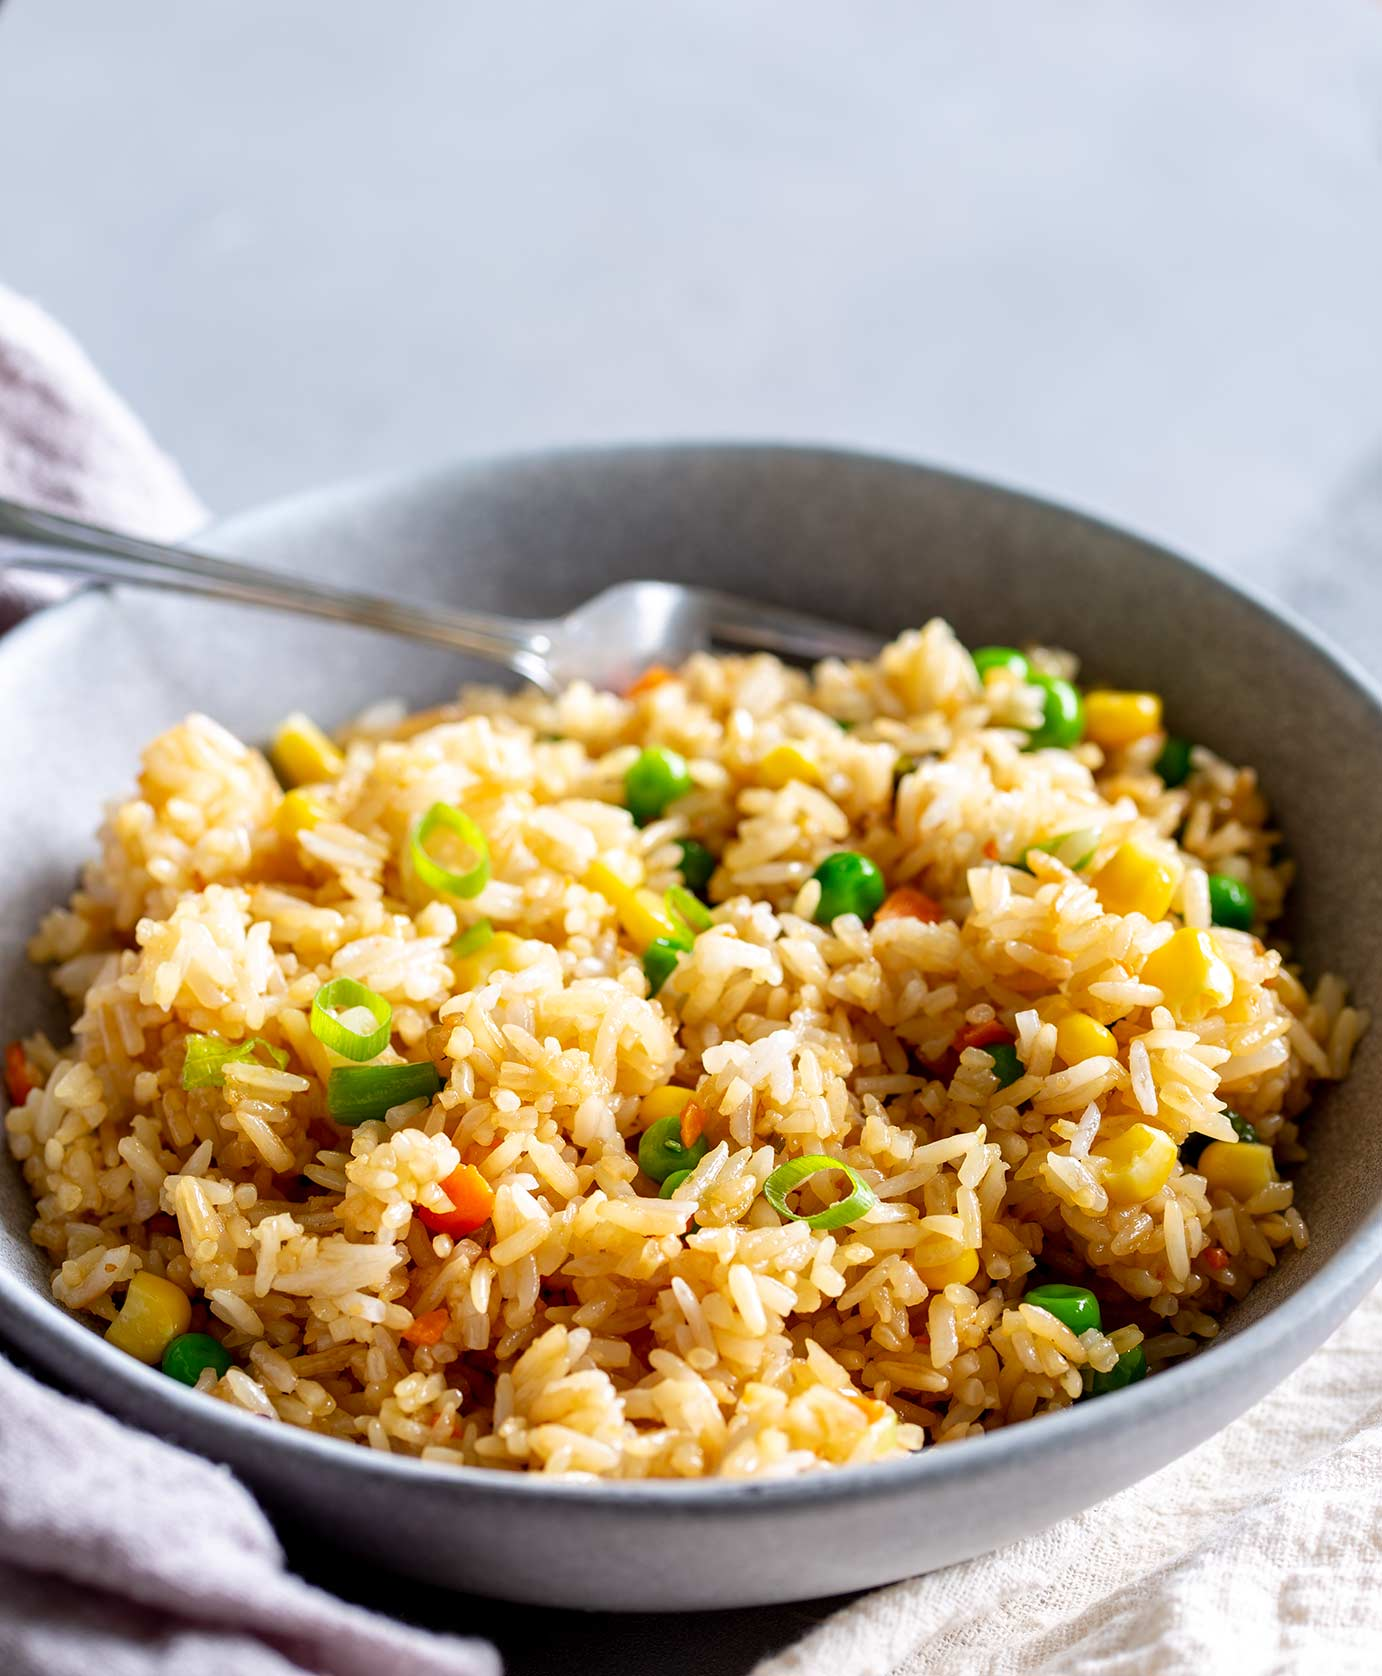 fried rice in a grey bowl with a fork at the back